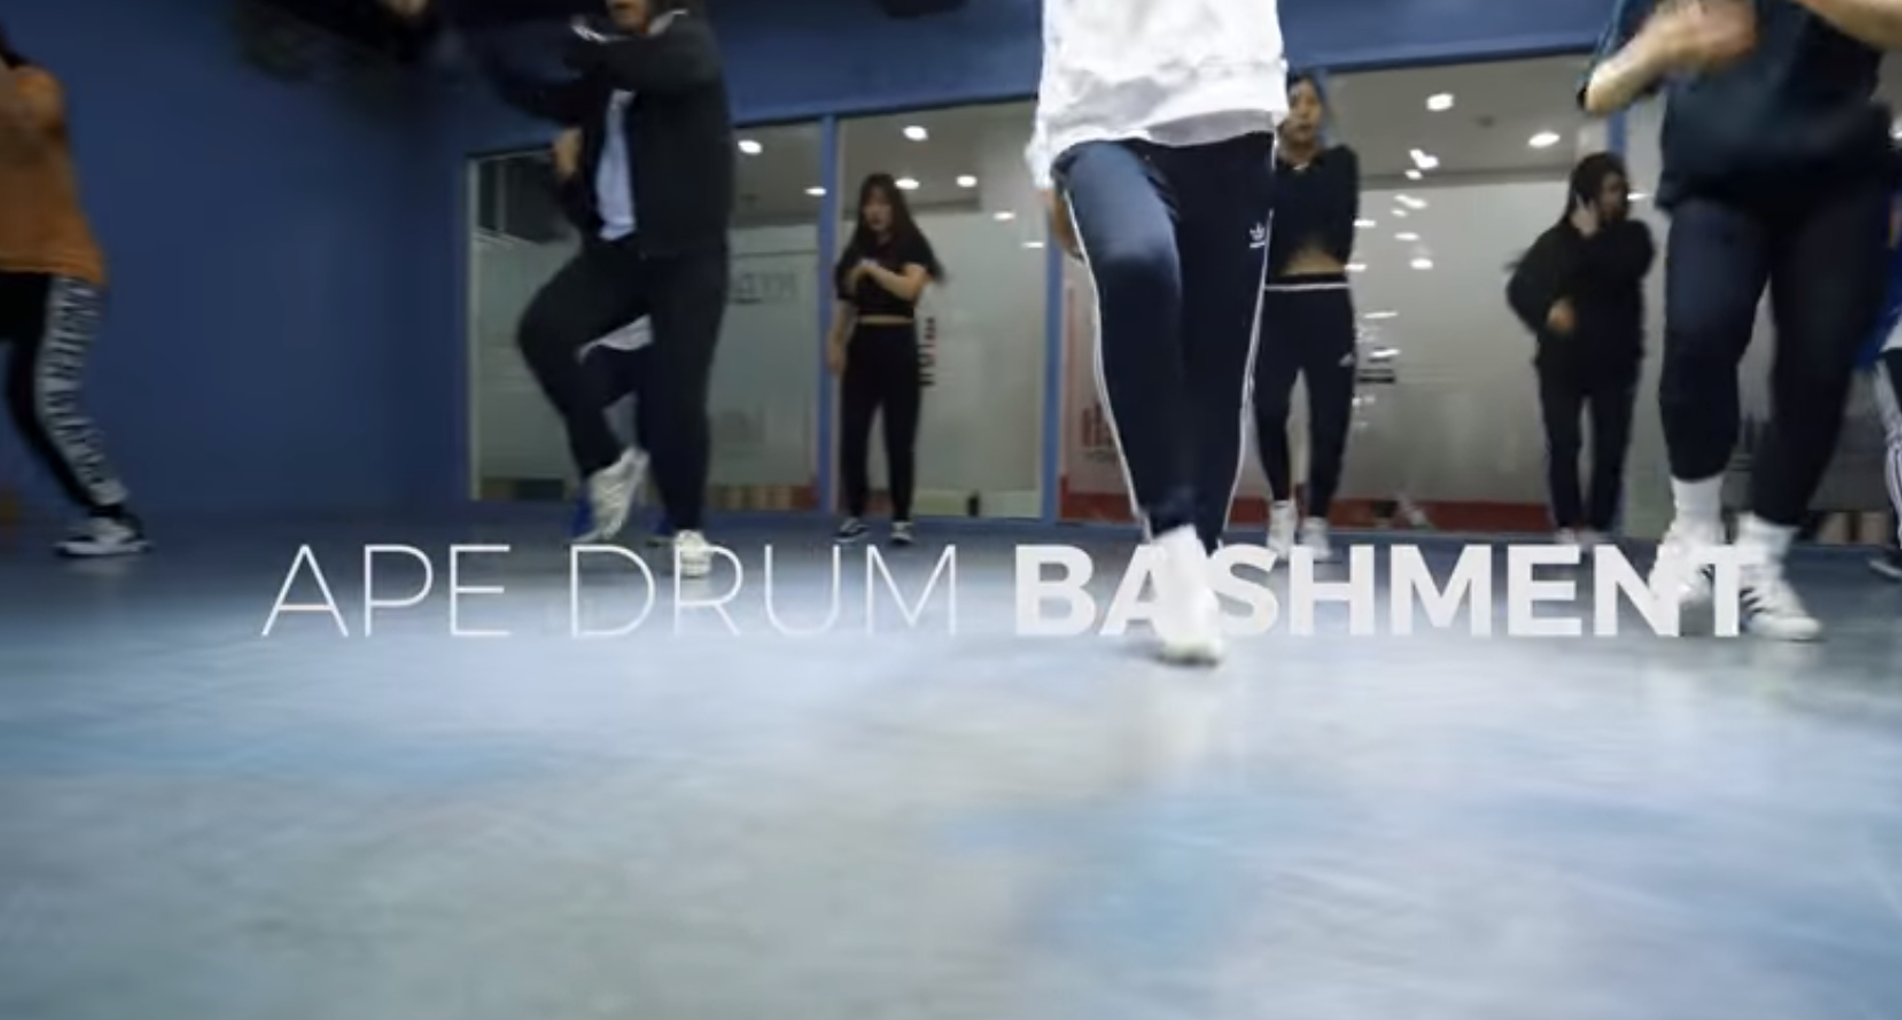 APE DRUM BASHMENT (choroeography. Jinwoo)